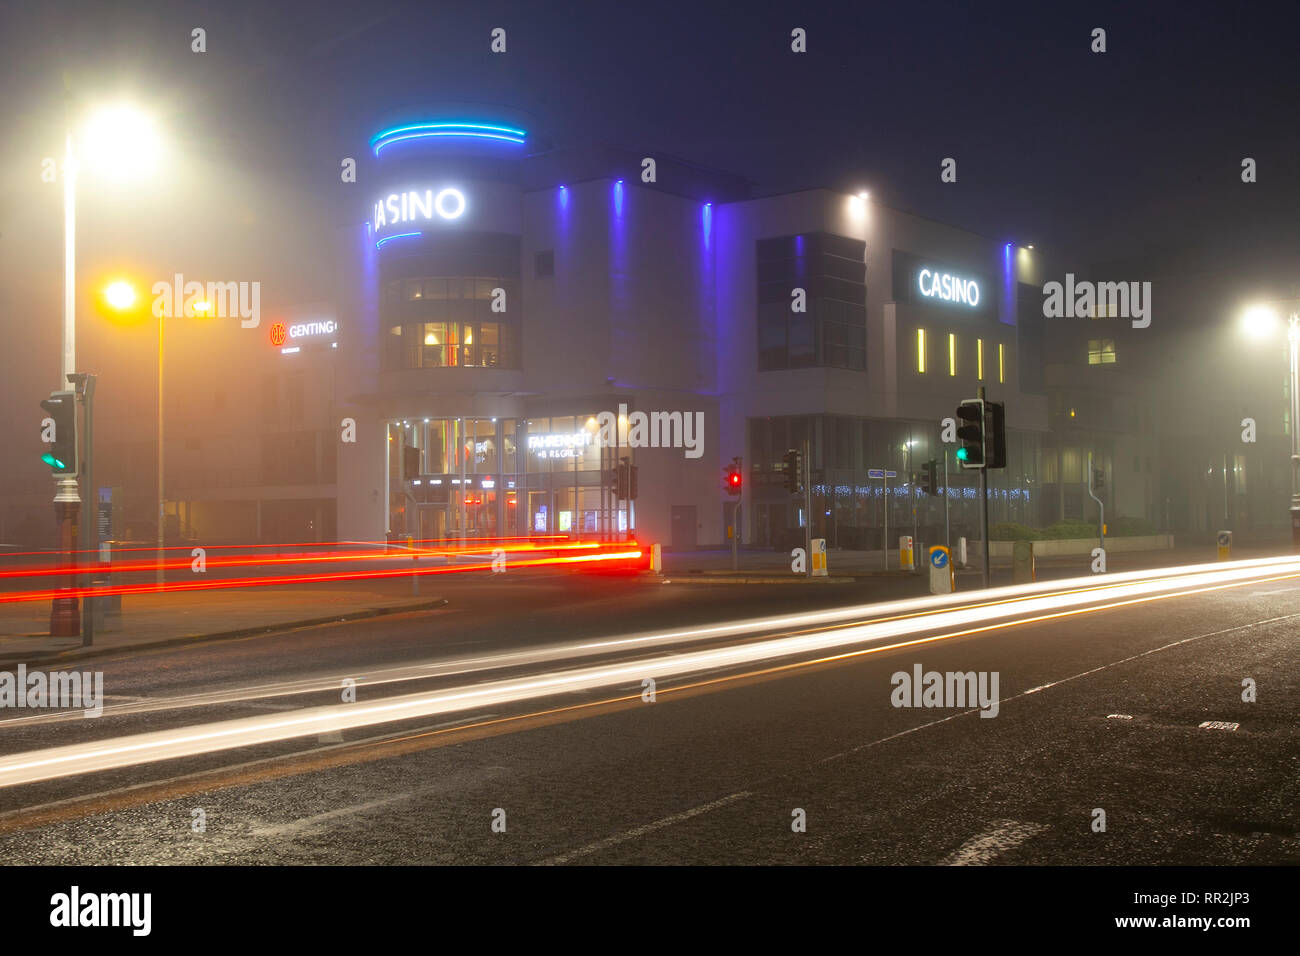 Southport, Merseyside. 24th February, 2019. UK Weather. Hazy, foggy, misty start to the day with light drizzle as early morning city centre traffic lights up the damp pavements. Traffic trails from late night revellers using homebound taxis; as lights from passing vehicles leave reflections on the road surface. Credit: MWI/AlamyLiveNews. - Stock Image